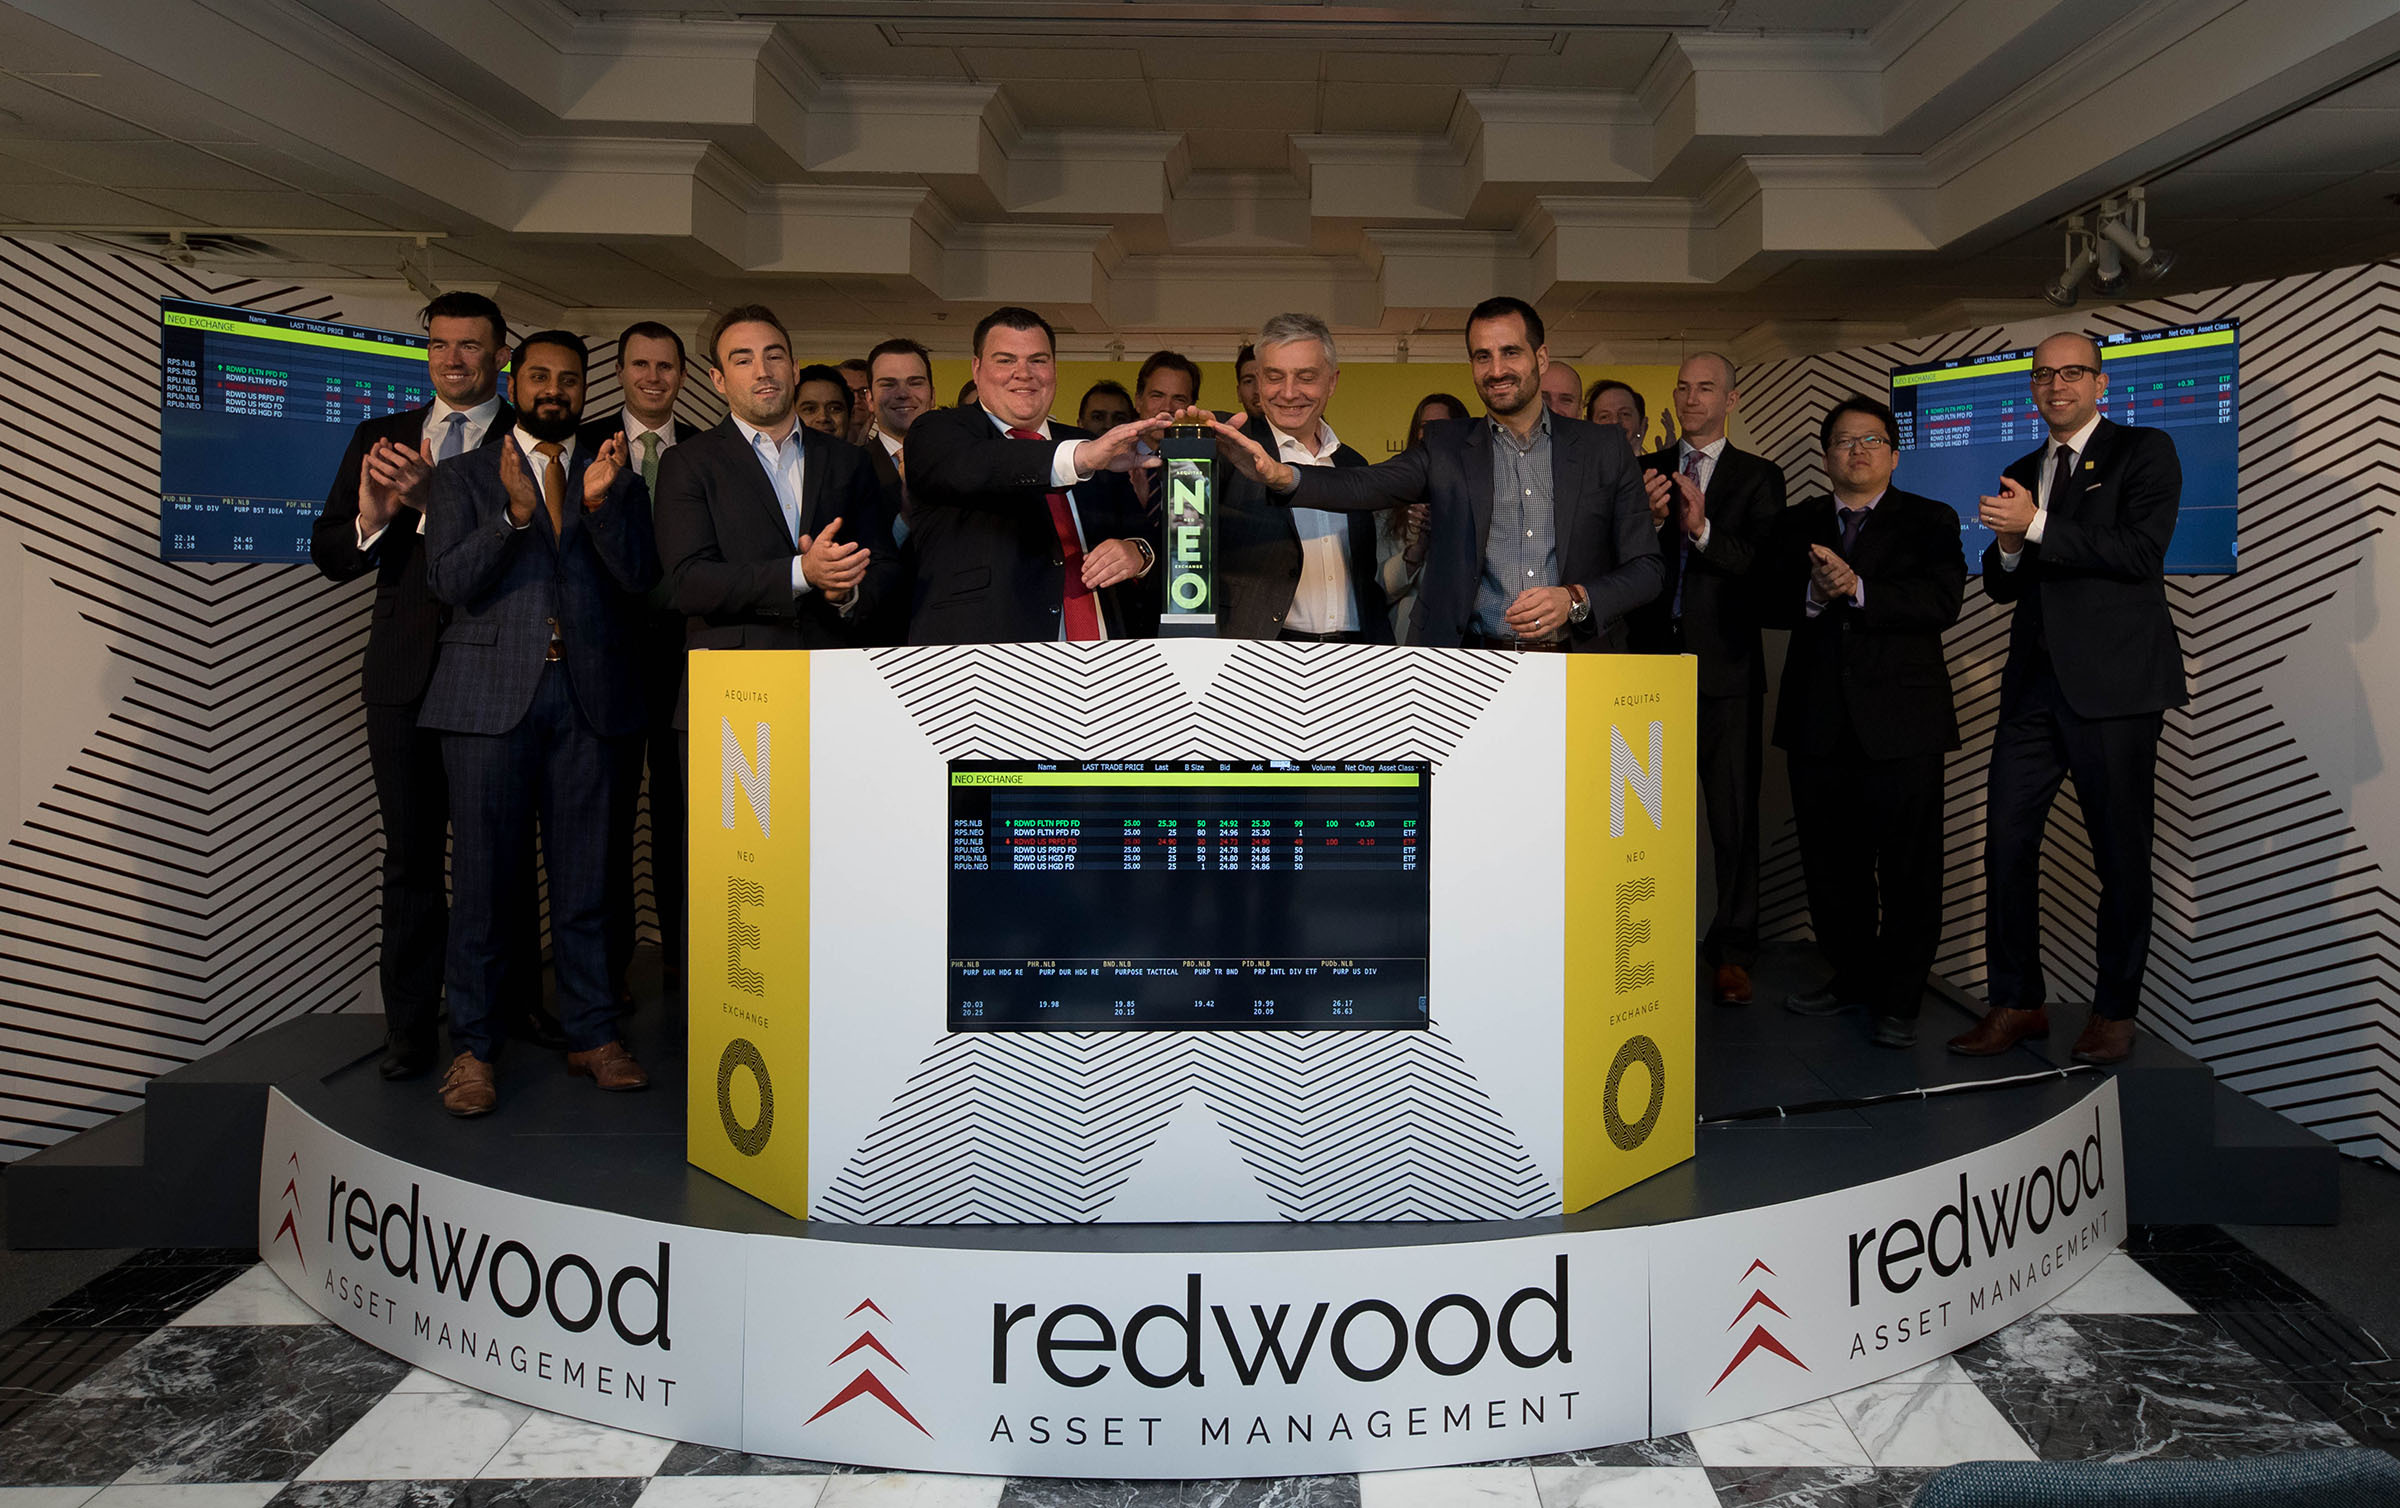 """Redwood Asset Management (""""Redwood""""), a wholly owned subsidiary of Purpose Investments Inc. (""""Purpose""""), including Redwood President, Peter Shippen, and Som Seif, founder and Chief Executive Officer, Purpose, joined Jos Schmitt, President and Chief Executive Officer, Aequitas NEO Exchange Inc. (""""NEO Exchange"""" or """"NEO""""), to open the market in celebration of the launch of two new ETFs, consisting of three ETF listings on NEO. These are the first Redwood ETFs to be launched on the public markets, and will provide investors with a suite of ETF solutions managed by best-in-class specialist investment boutiques. Redwood becomes the fourth ETF issuer to list securities on NEO. The actively managed Redwood ETF listings that began trading on NEO on March 15, 2017, are Redwood Floating Rate Preferred Fund (RPS) and Redwood U.S. Preferred Share Fund (RPU, RPU.B). (Photo: Business Wire)"""